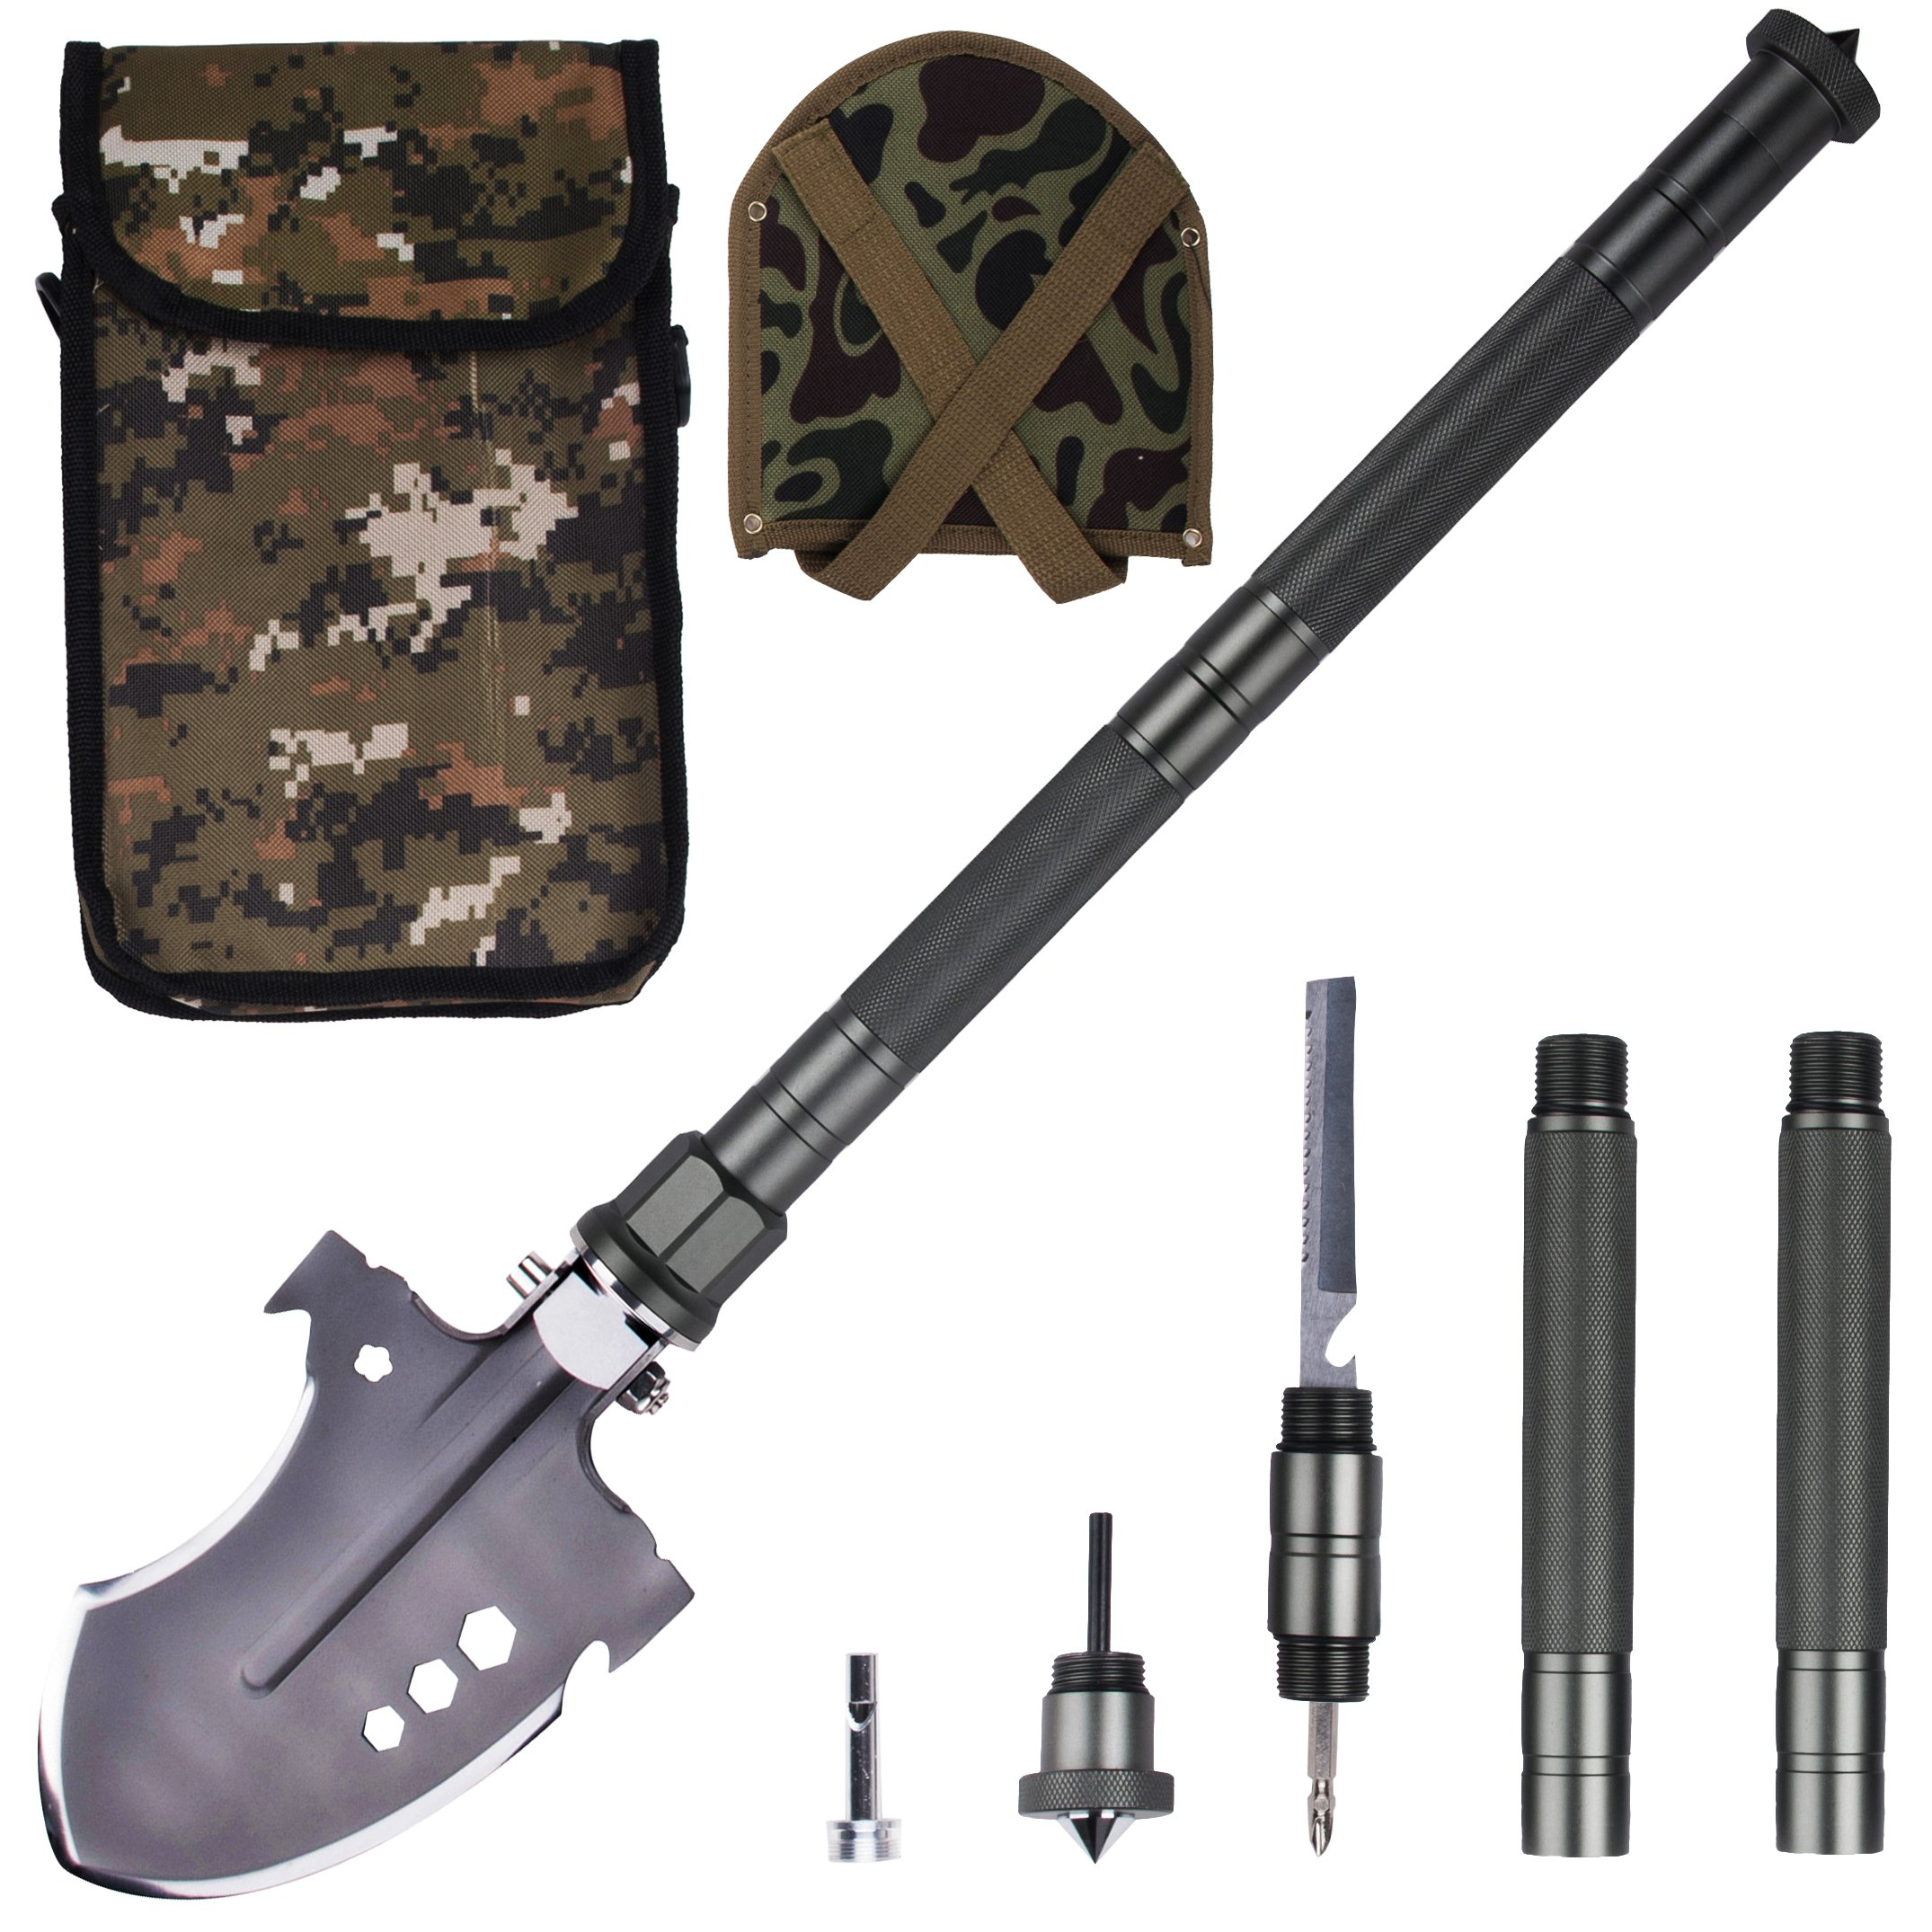 GLOSSDAY Military Folding Shovel Multi-Tool,Portable Survival Shovels,Tactical Entrenching Tool,Heavy Duty Emergency Tool, Outdoor Gear for Camping Backpacking,Fishing,Hiking(40inch)